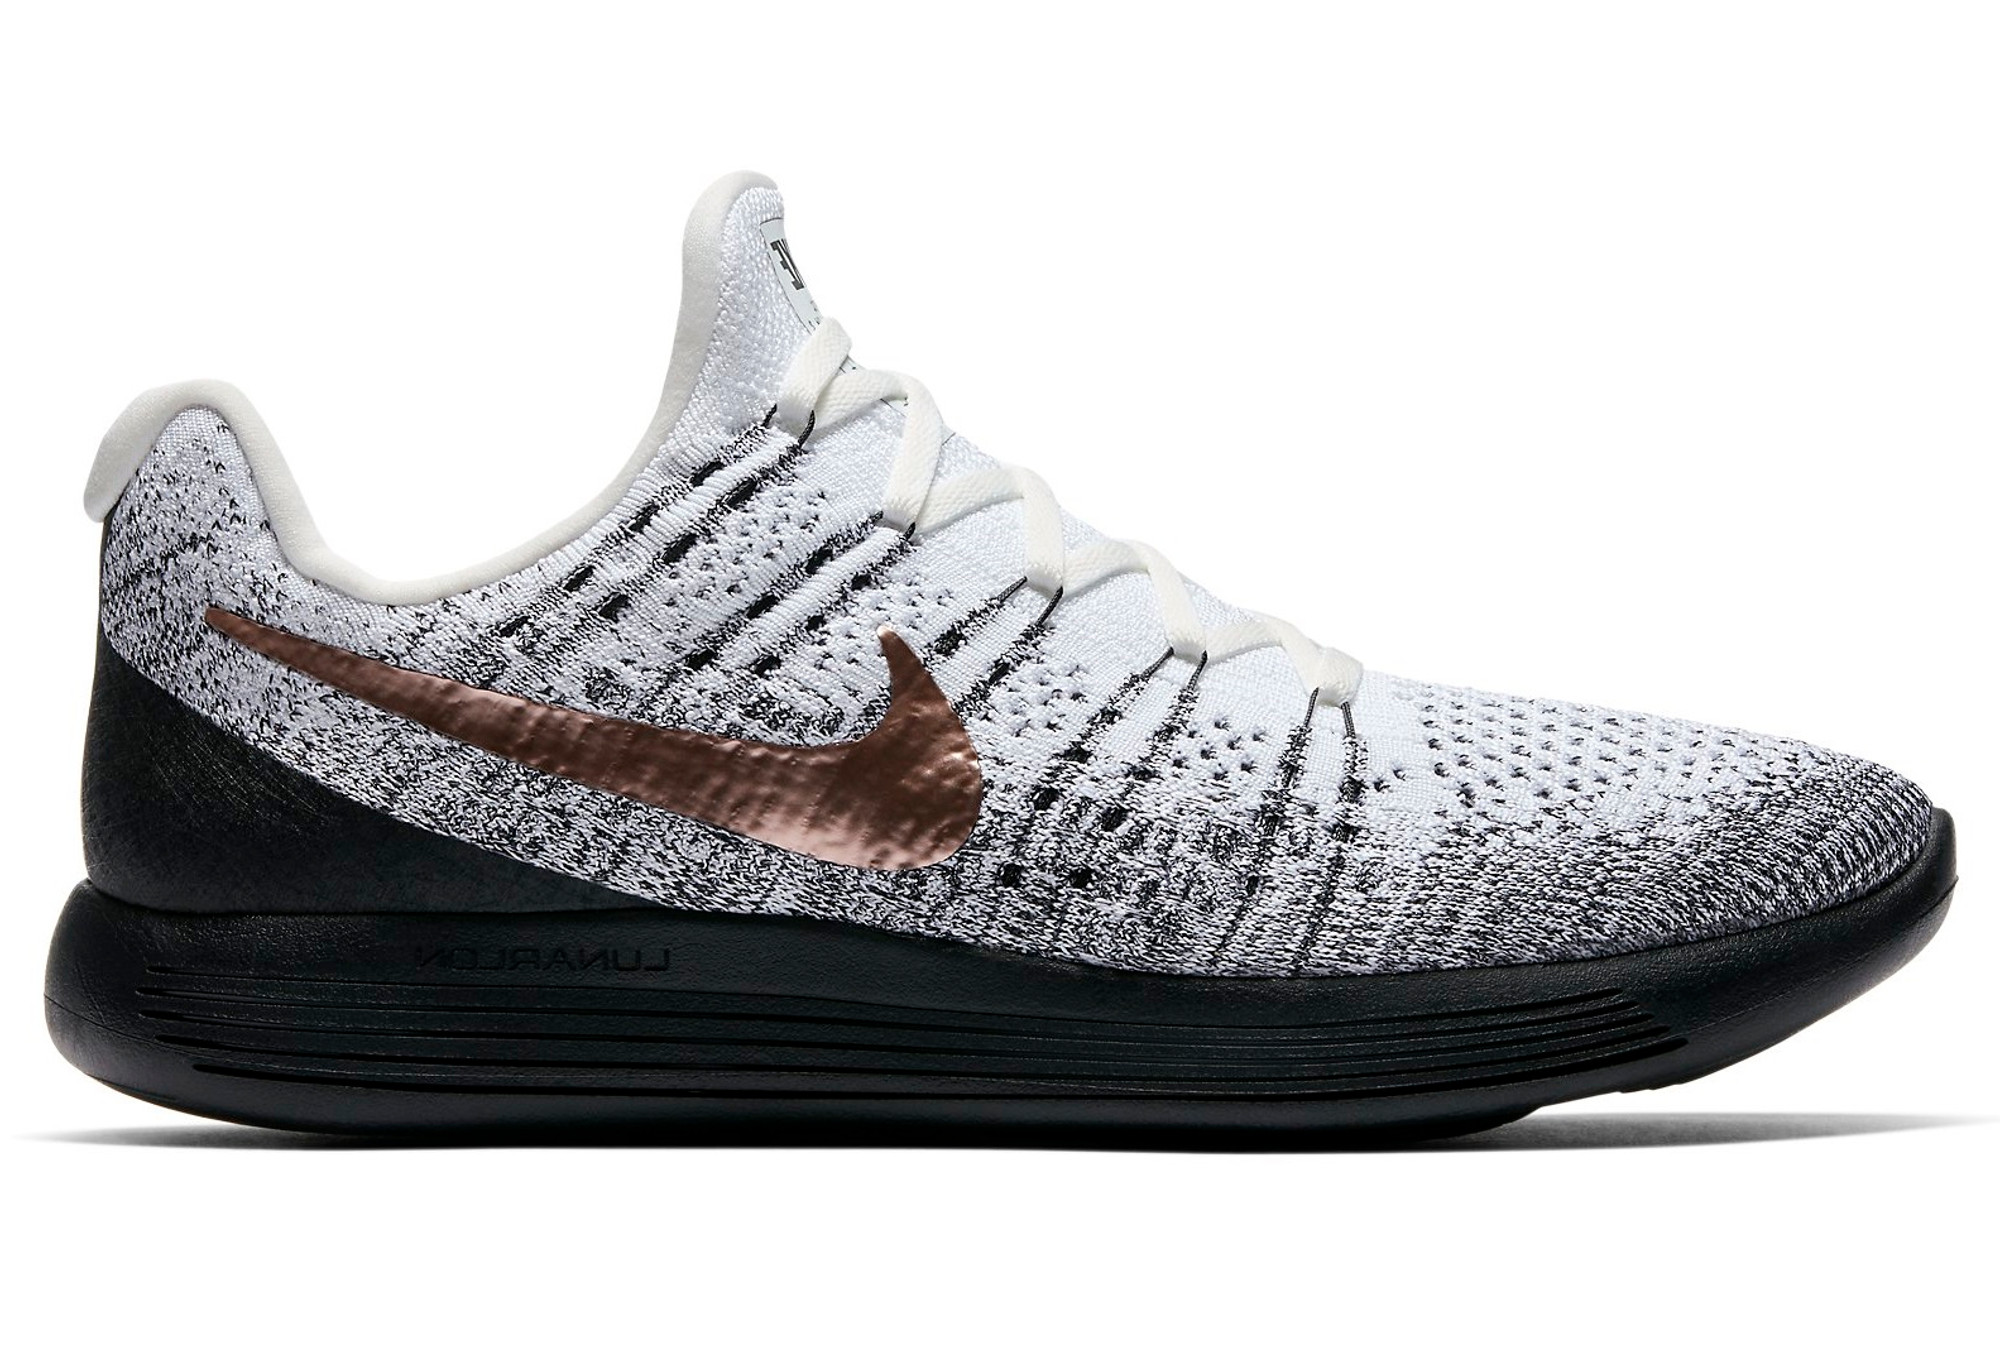 daff539766d68a ... discount nike flyknit racer nike lunarepic low flyknit 2 explorer shoes  white black 4c0e2 f2890